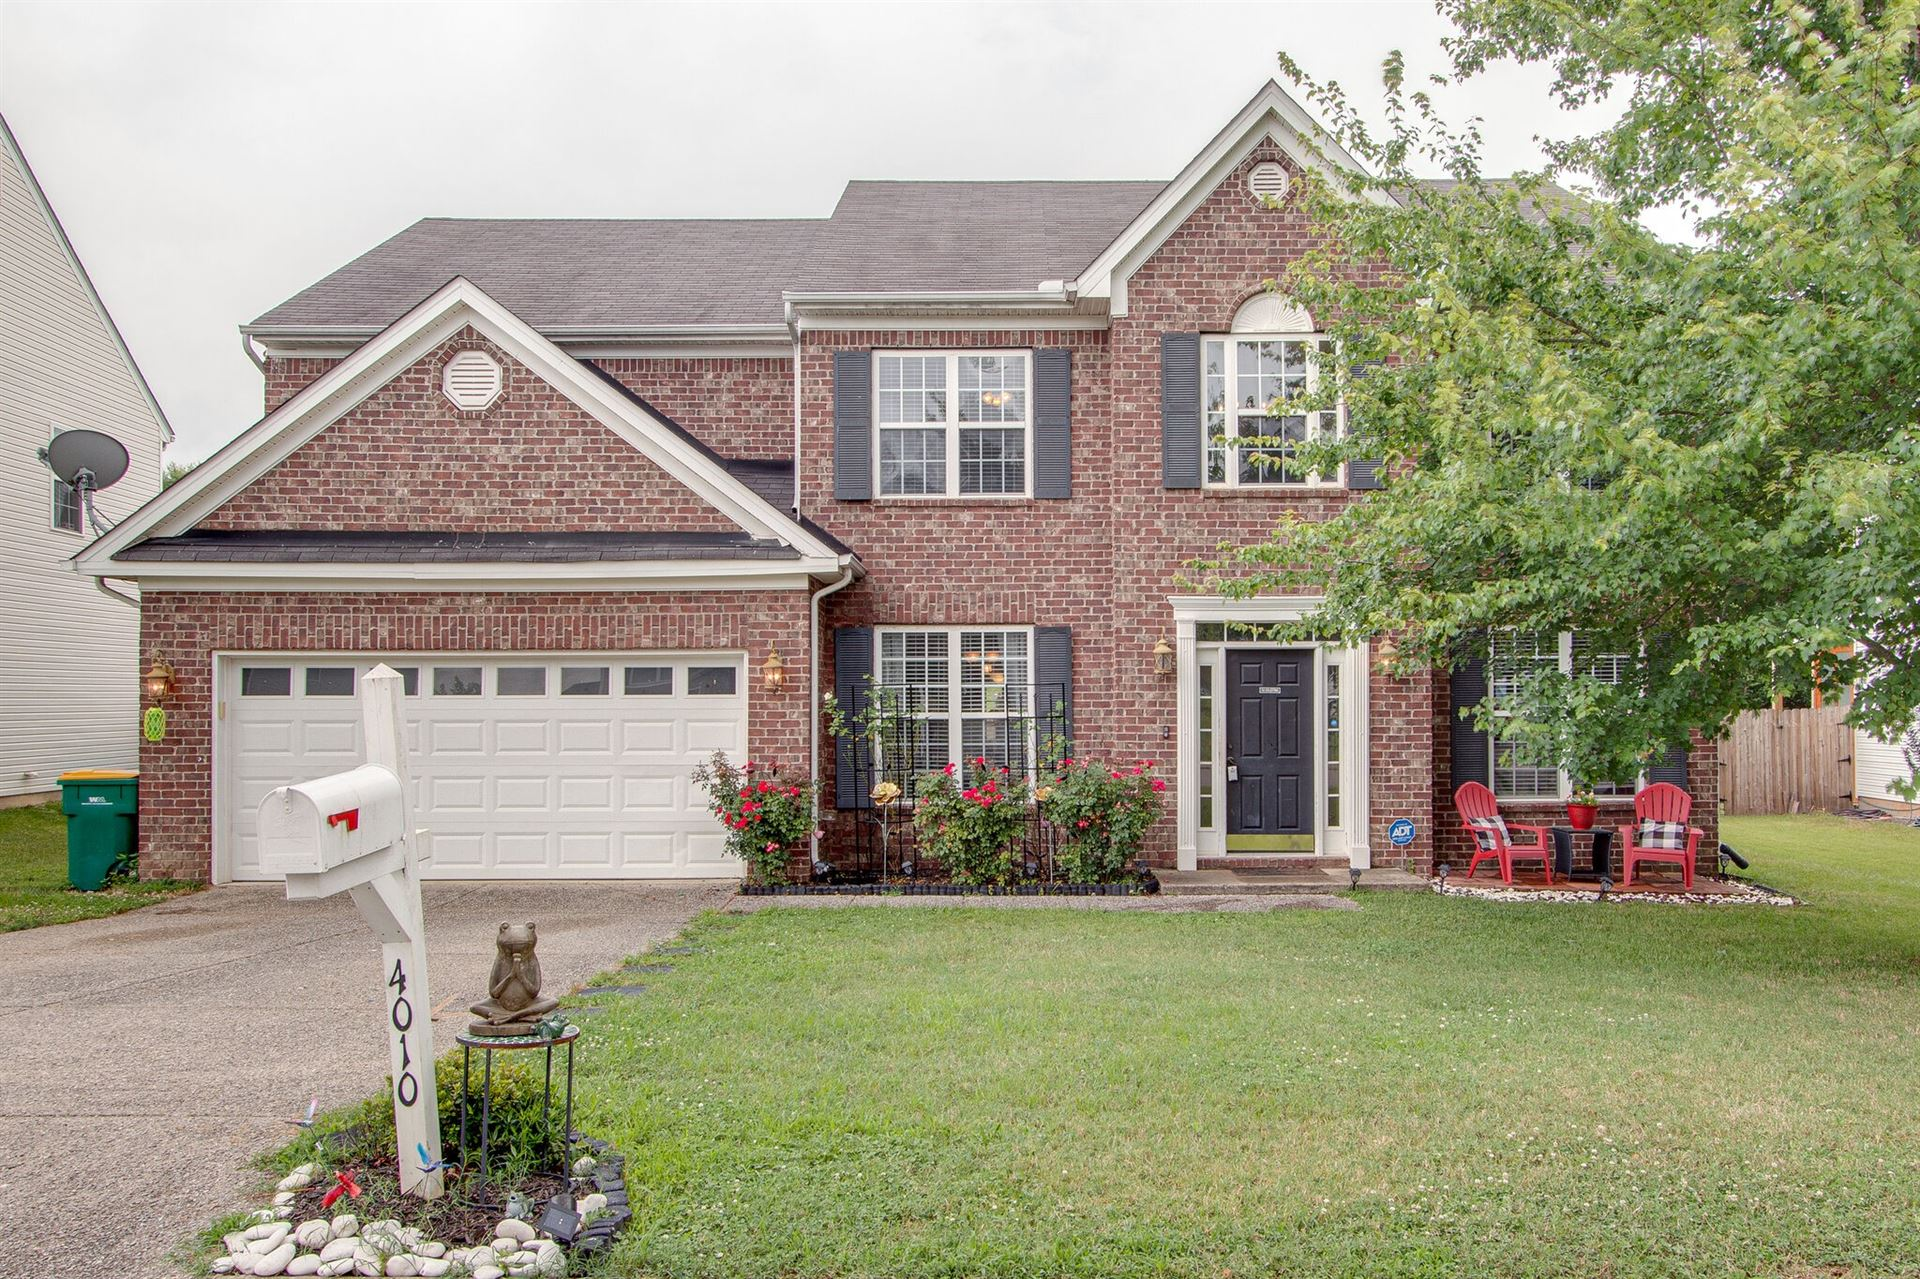 Photo of 4010 Cadence Dr, Spring Hill, TN 37174 (MLS # 2270461)